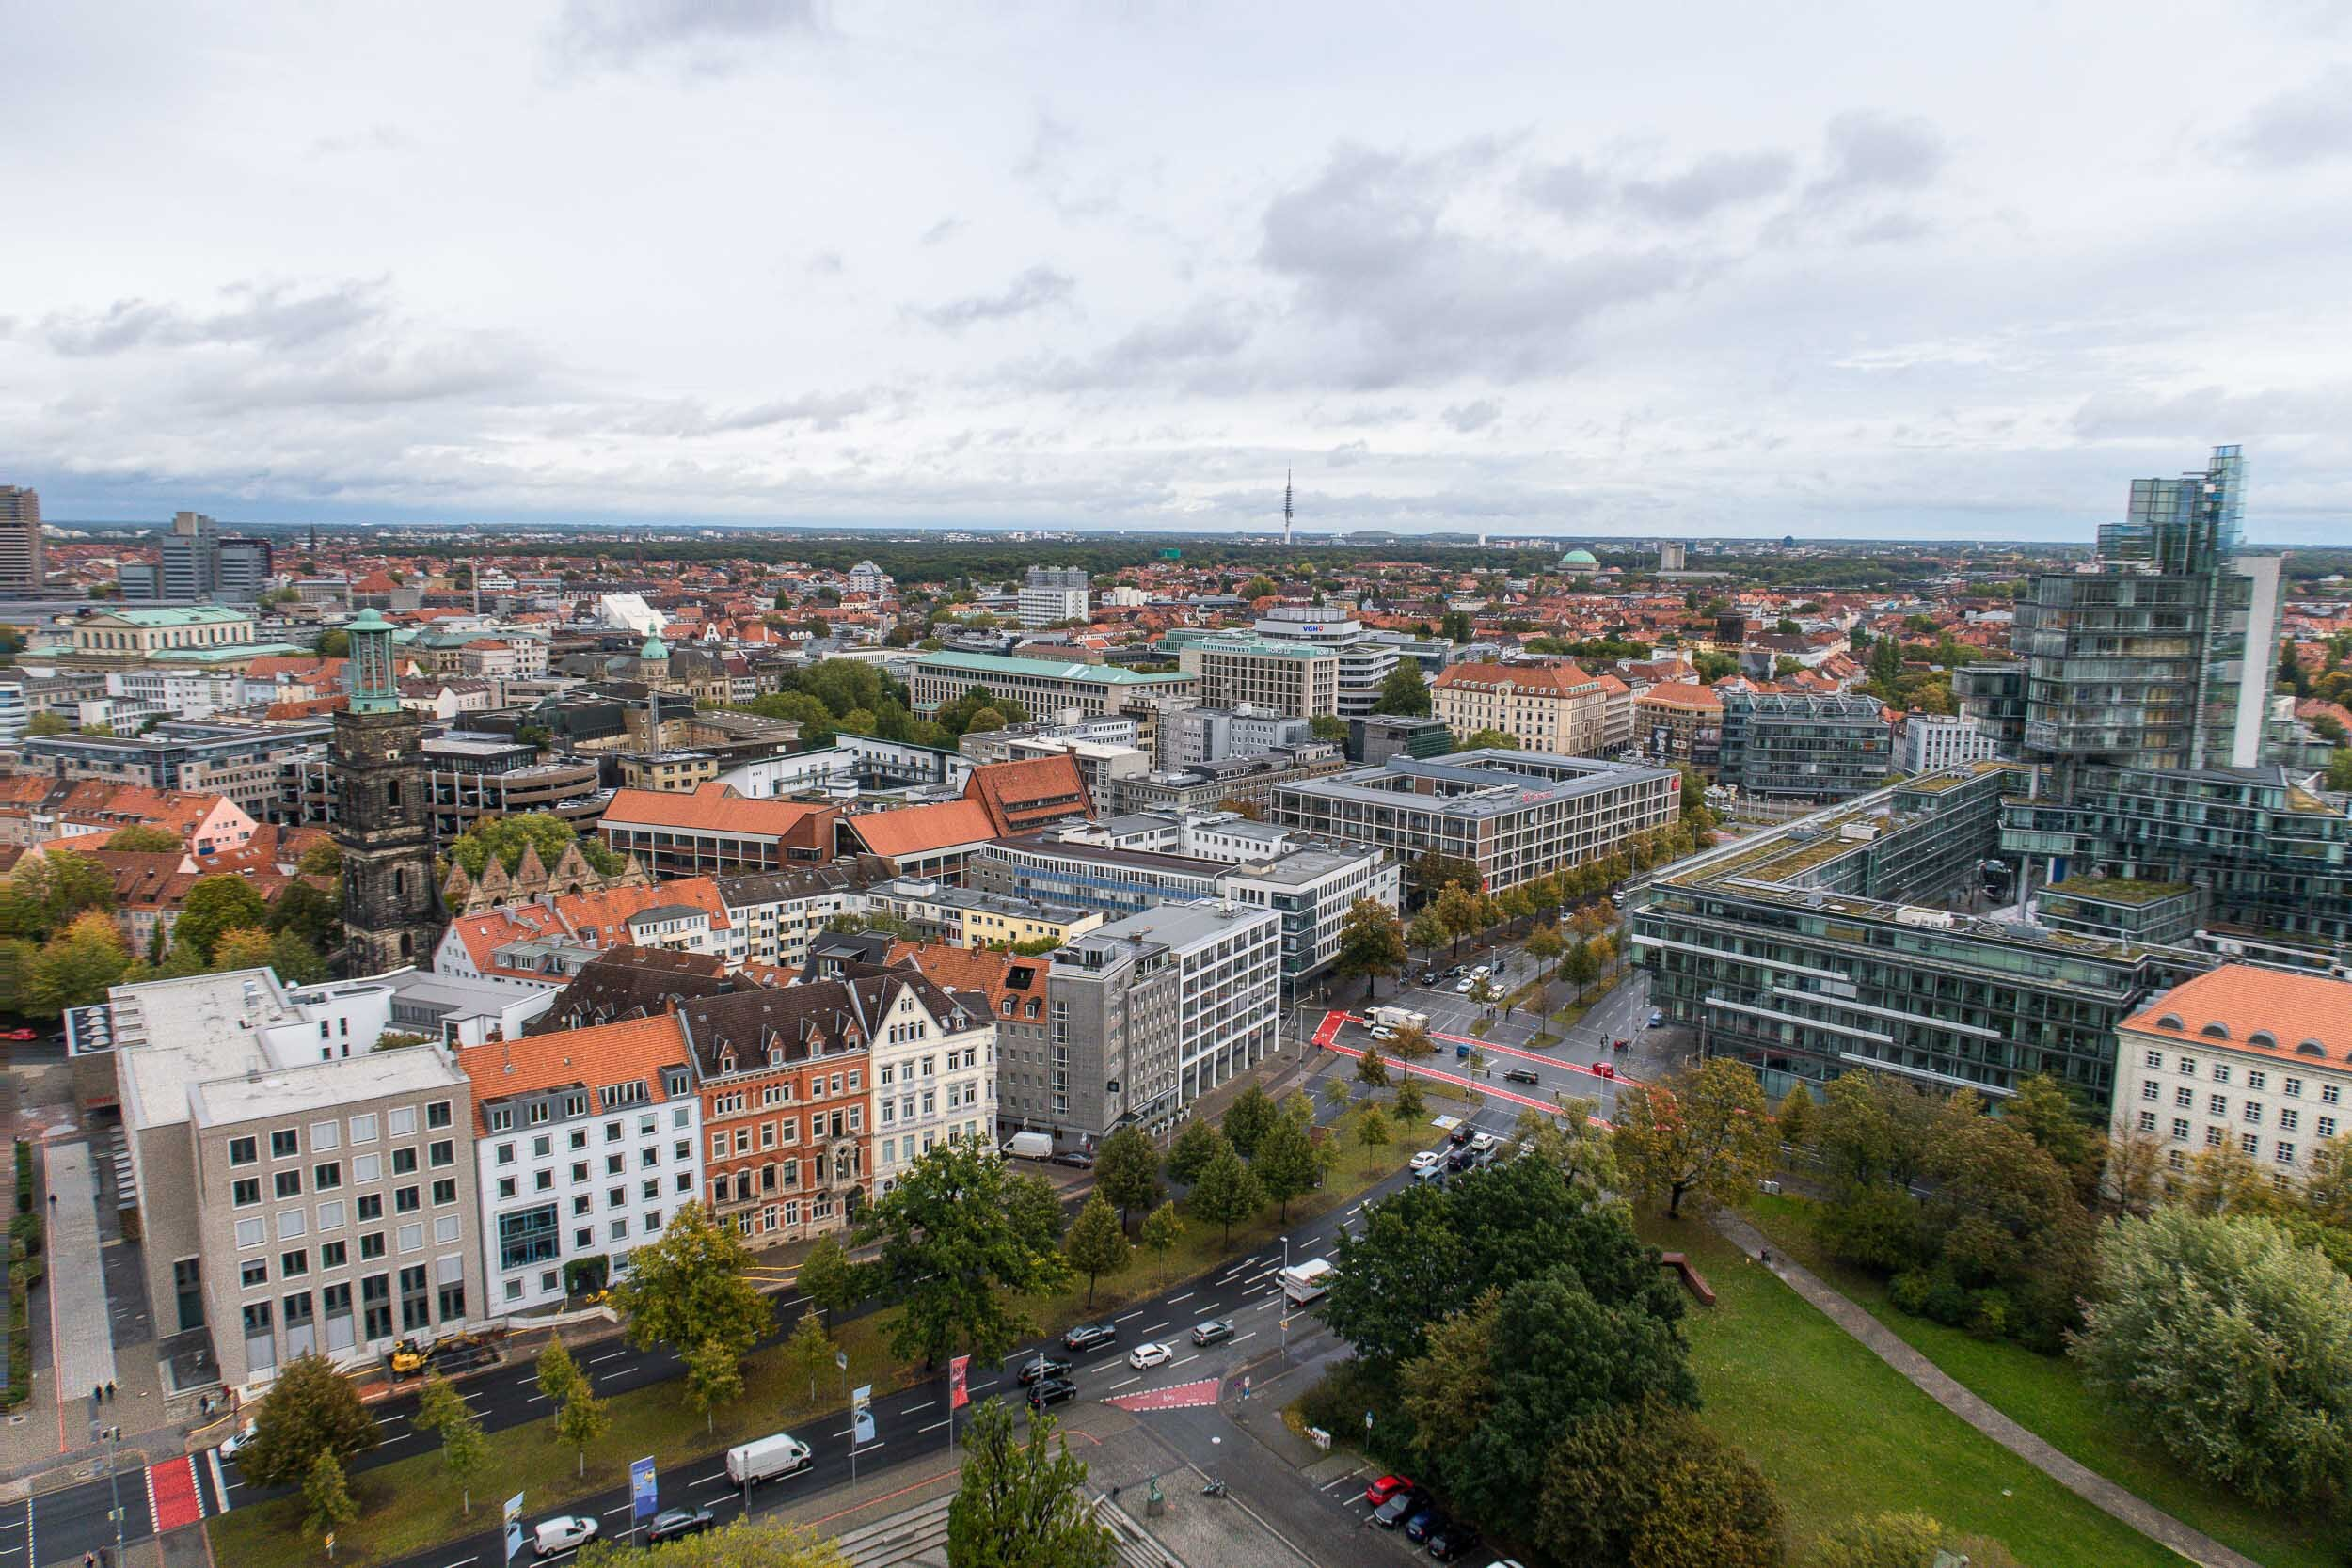 Epic views in Hannover, Germany